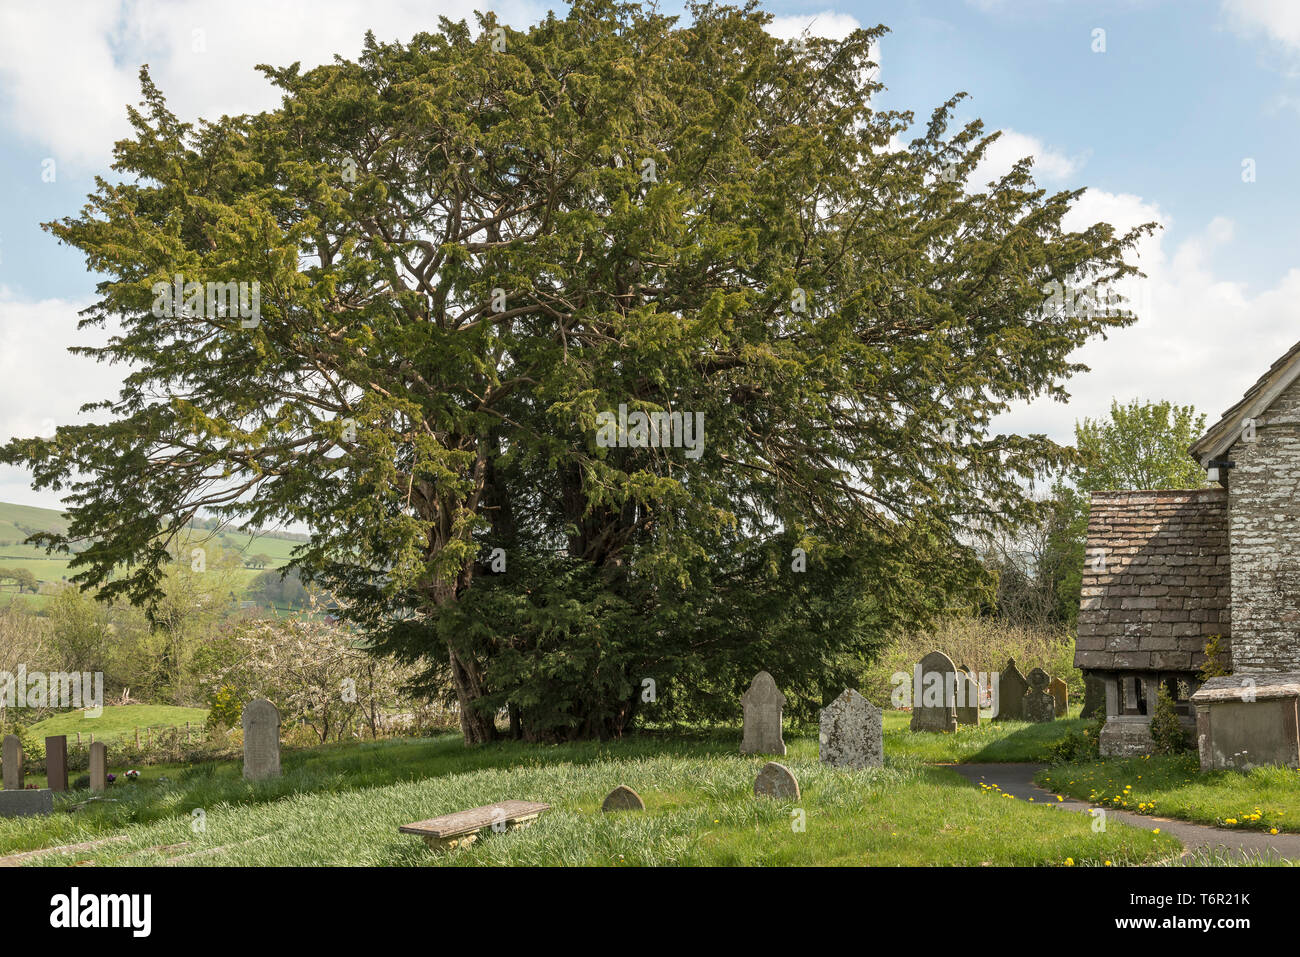 St Michael's Church, Discoed, Powys, Wales. A five thousand year old yew tree (taxus baccata) in the churchyard, one of the 5 oldest trees in  Britain - Stock Image